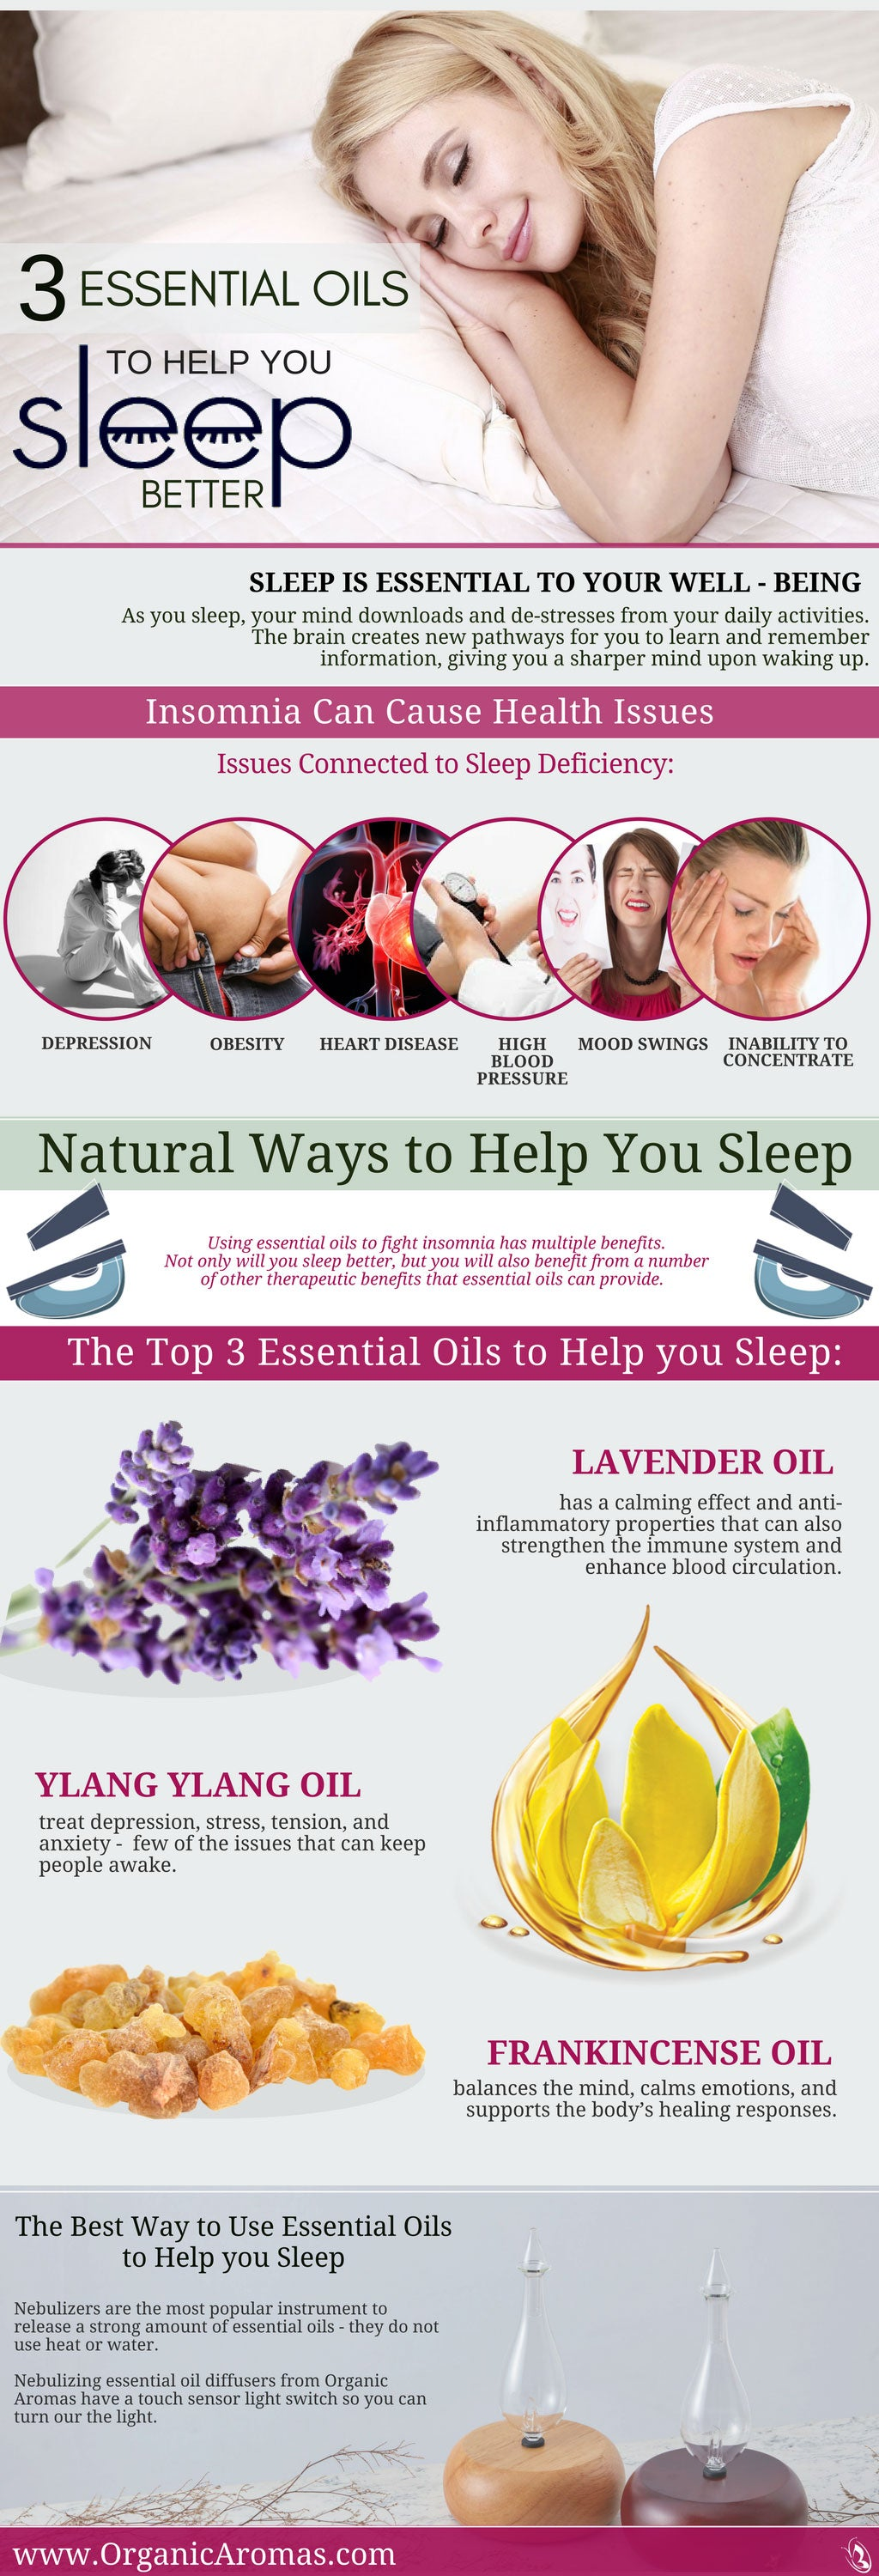 3 essential oils to help you sleep better - organic aromas